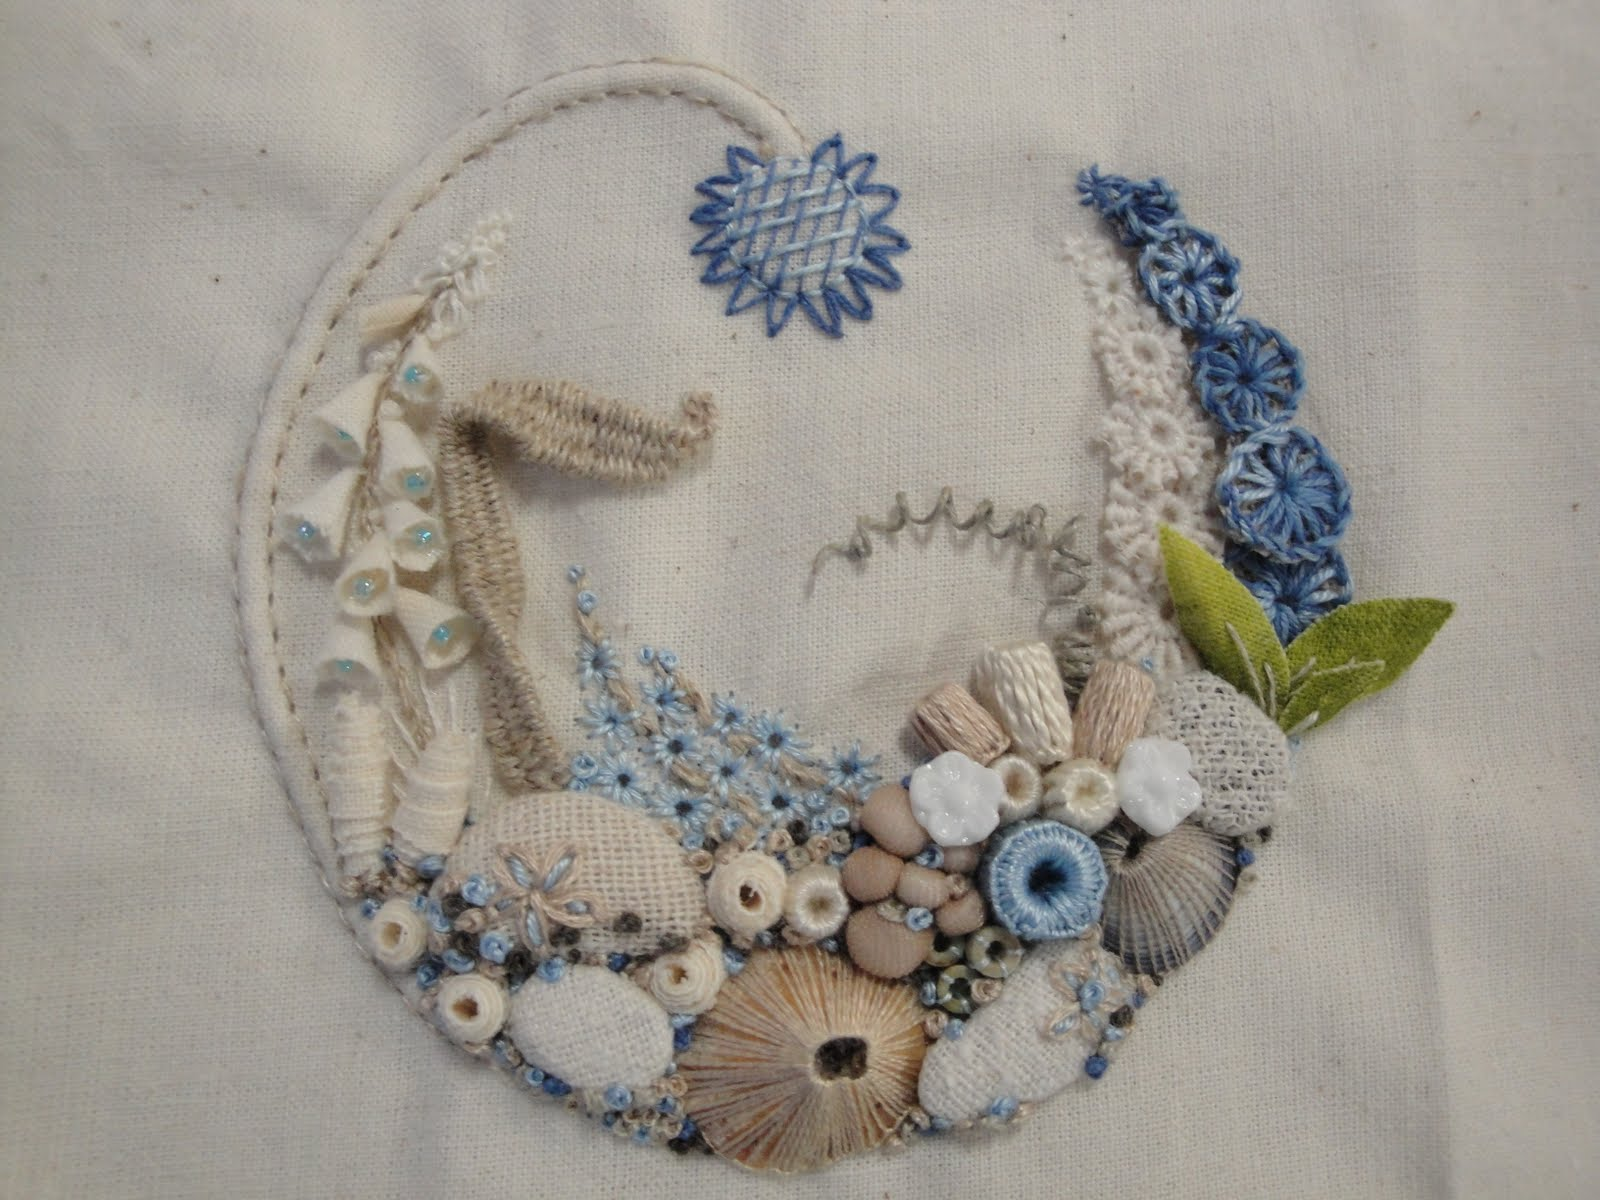 The Embroiderers Guild